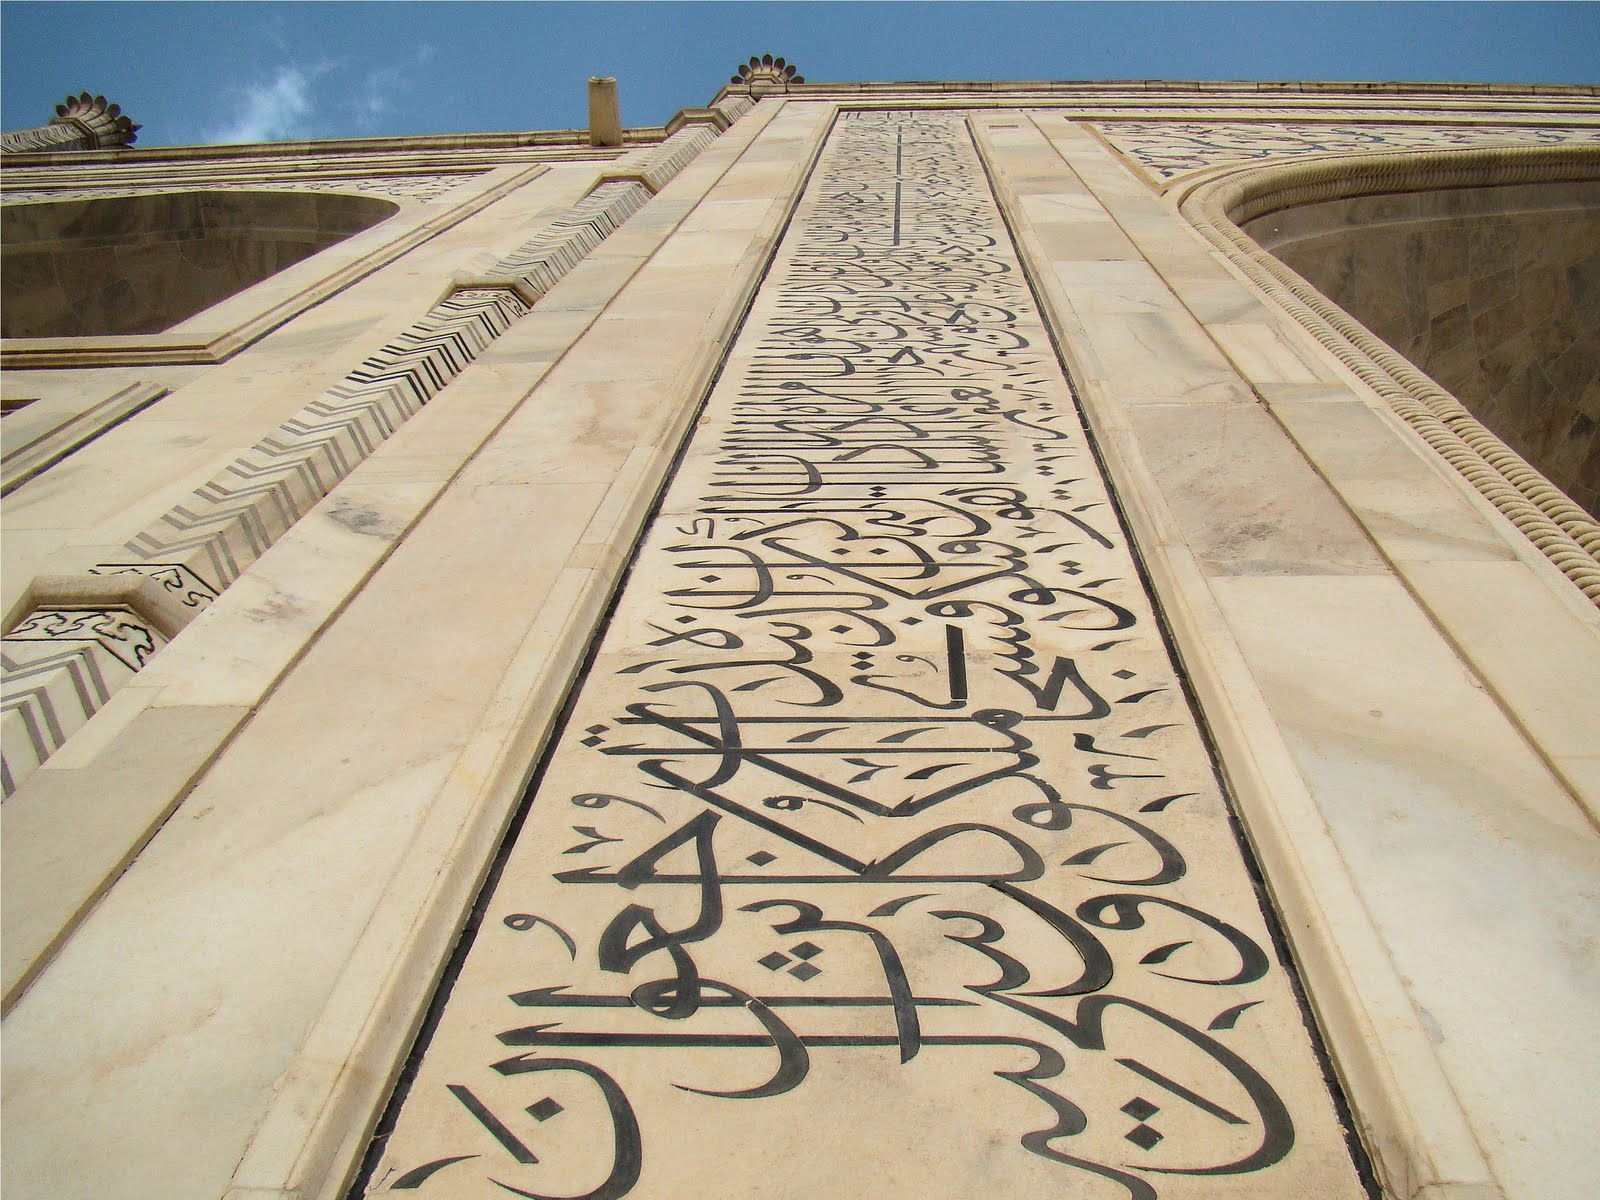 Taj Mahal, India, Caligraphy upper view